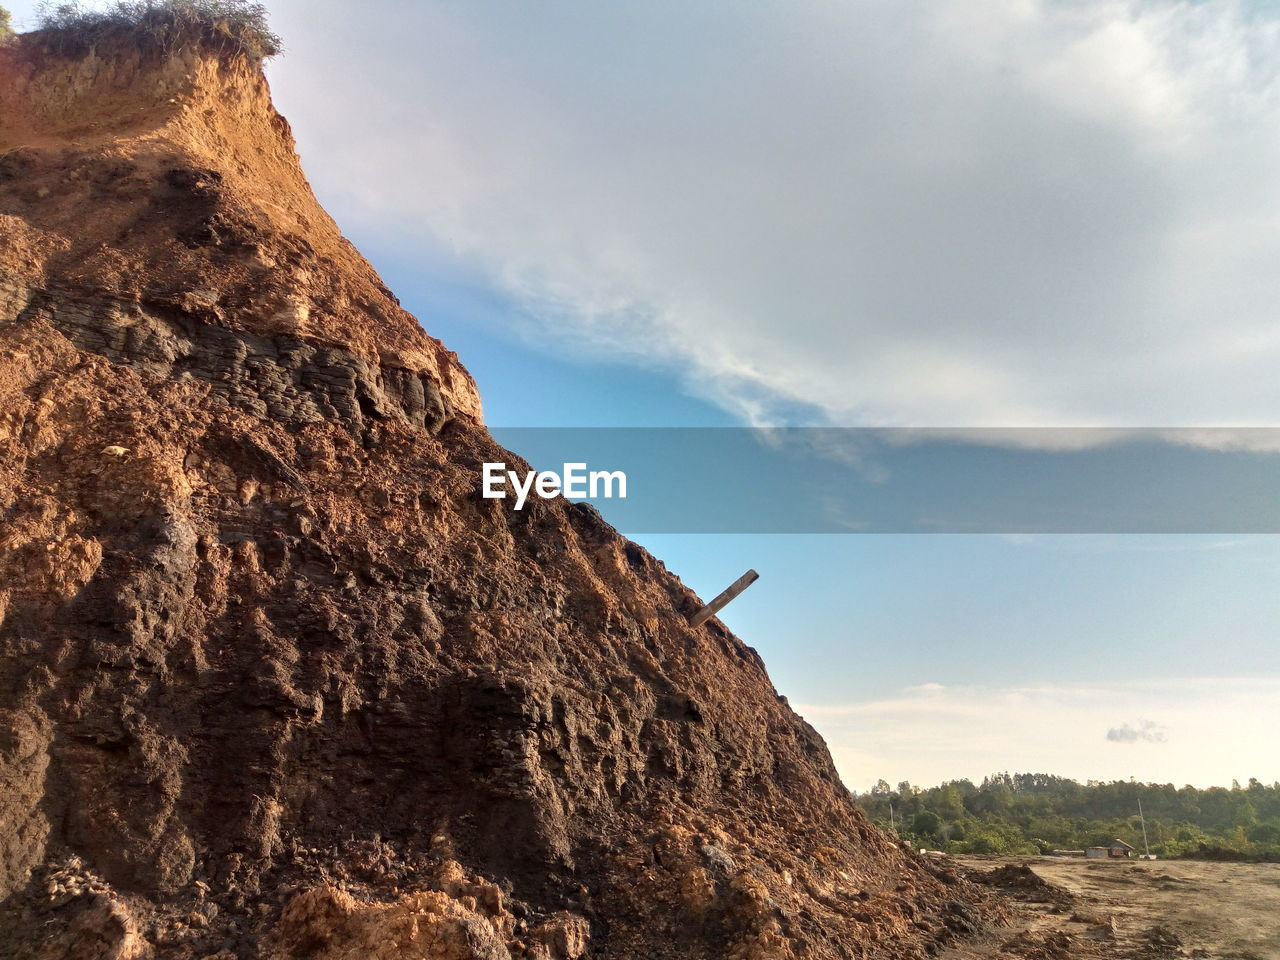 rock, sky, rock - object, solid, rock formation, mountain, beauty in nature, cloud - sky, day, nature, scenics - nature, low angle view, mountain range, tranquil scene, tranquility, land, geology, non-urban scene, cliff, physical geography, formation, outdoors, no people, eroded, mountain peak